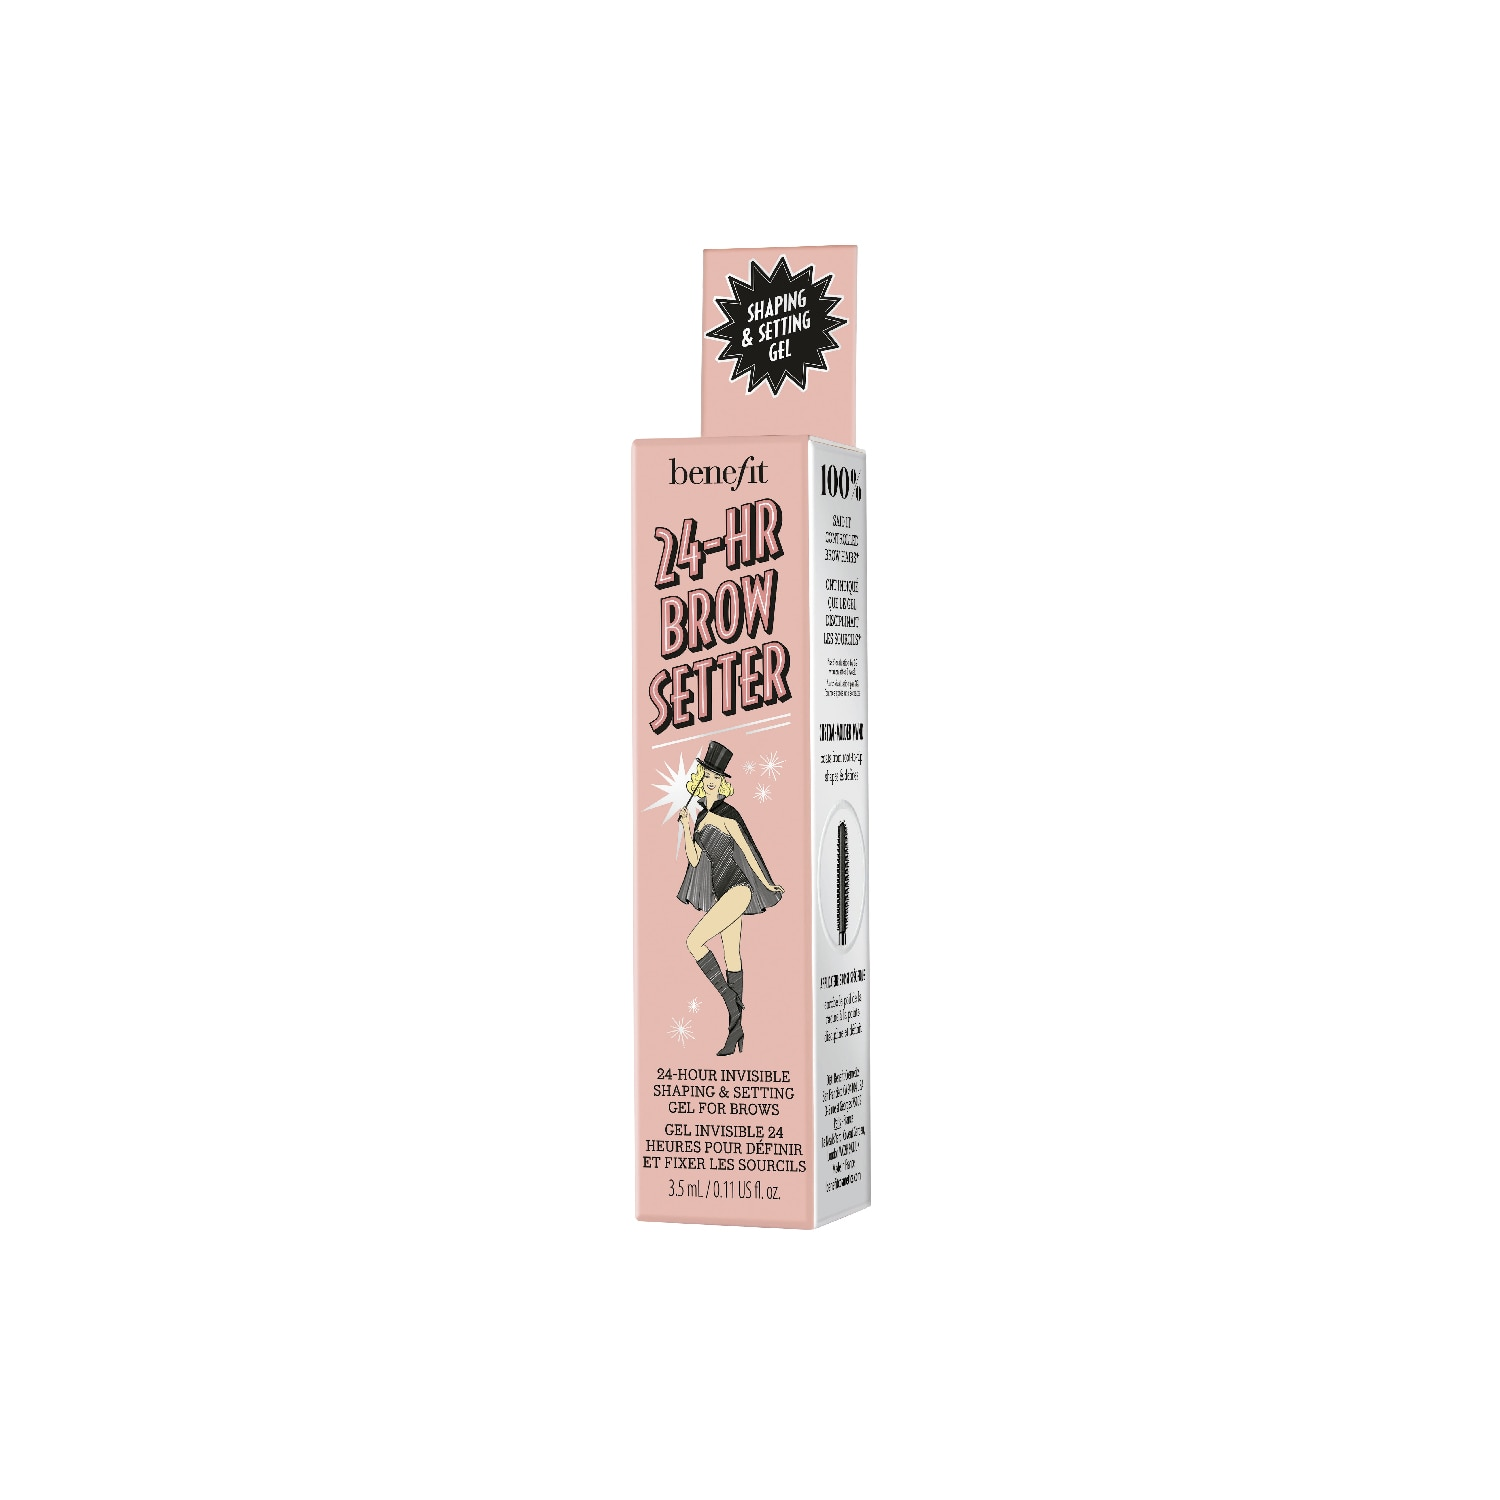 24-HR BROW SETTER SHAPING & SETTING GEL